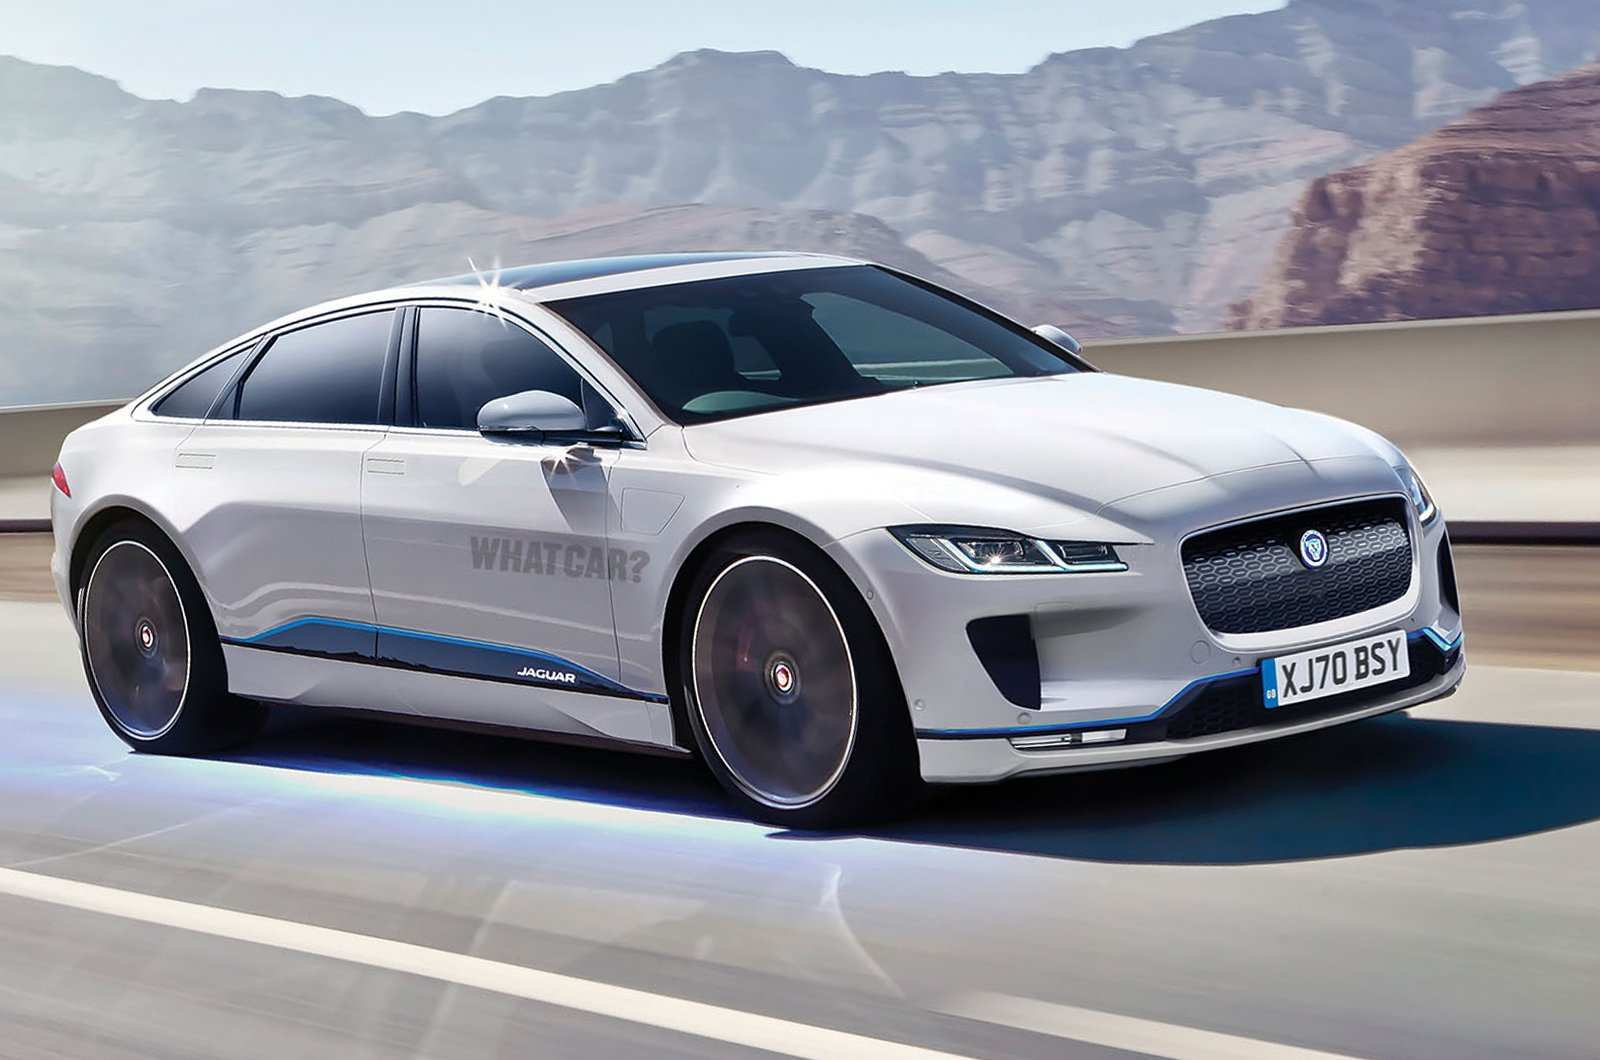 80 New Jaguar Car 2019 Spesification for Jaguar Car 2019